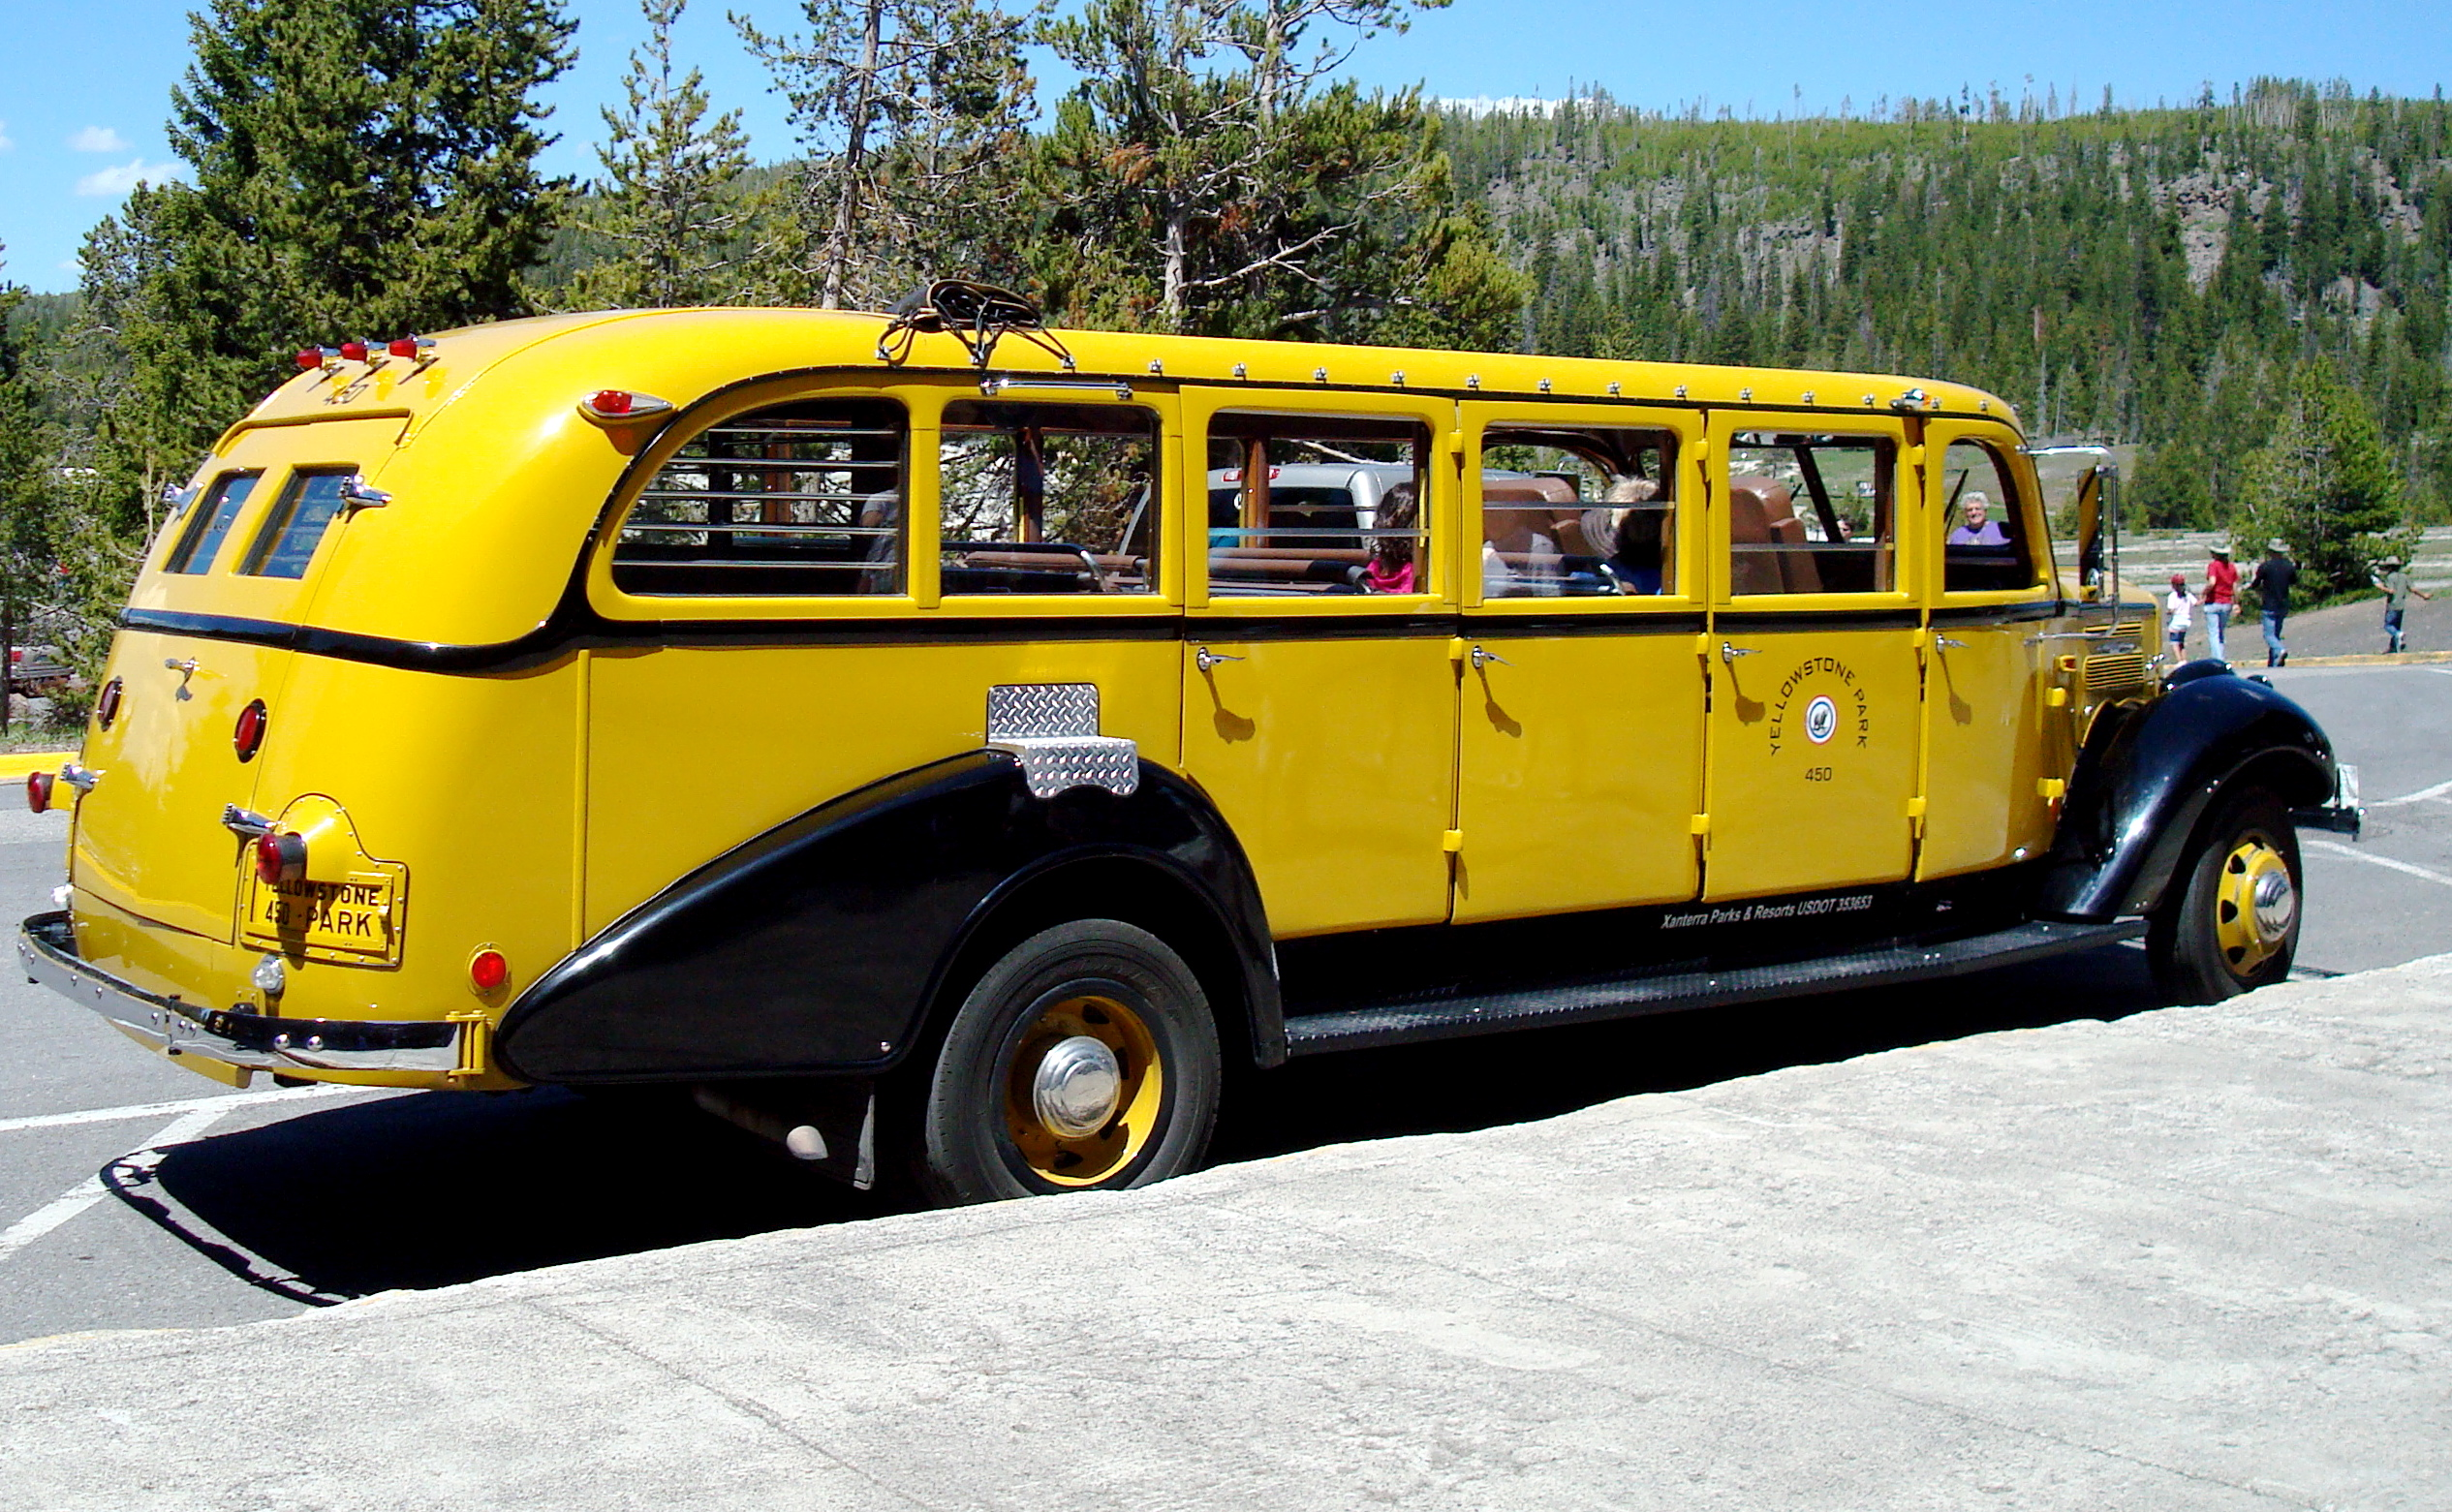 FileClassic Tour Bus Yellowstone National Park Wyoming USAJPG - Bus tours usa